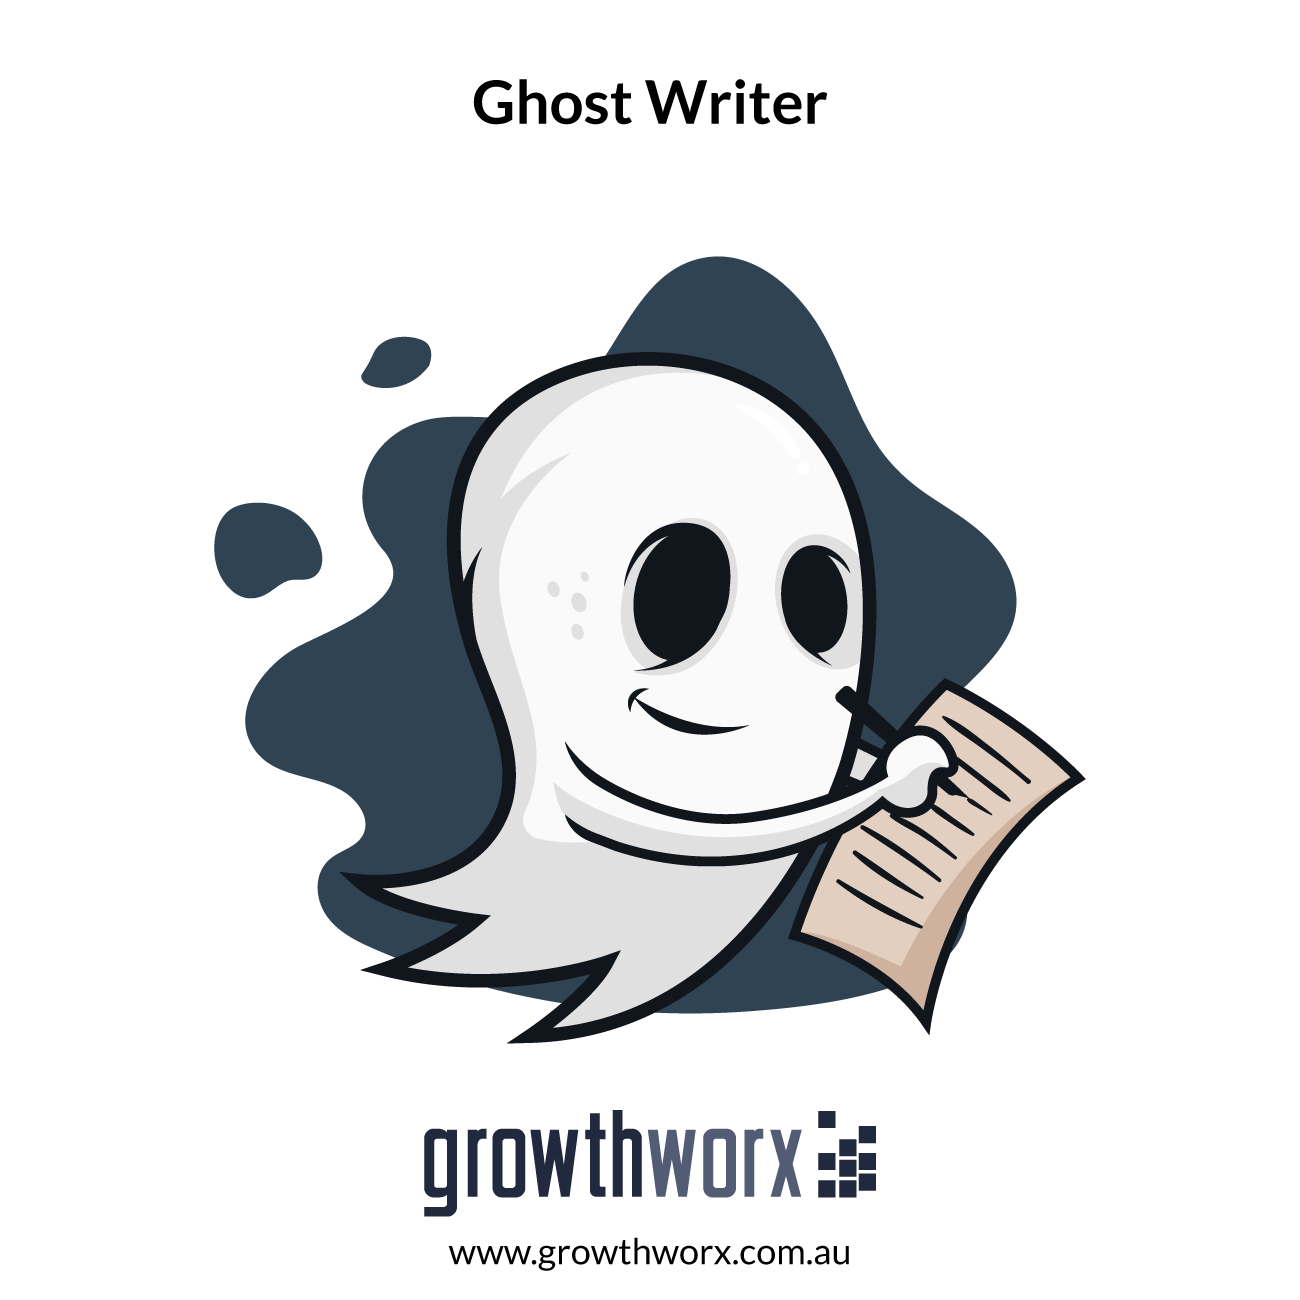 I will act as a ghost writer for books, novels, short stories, poems, articles and more 1